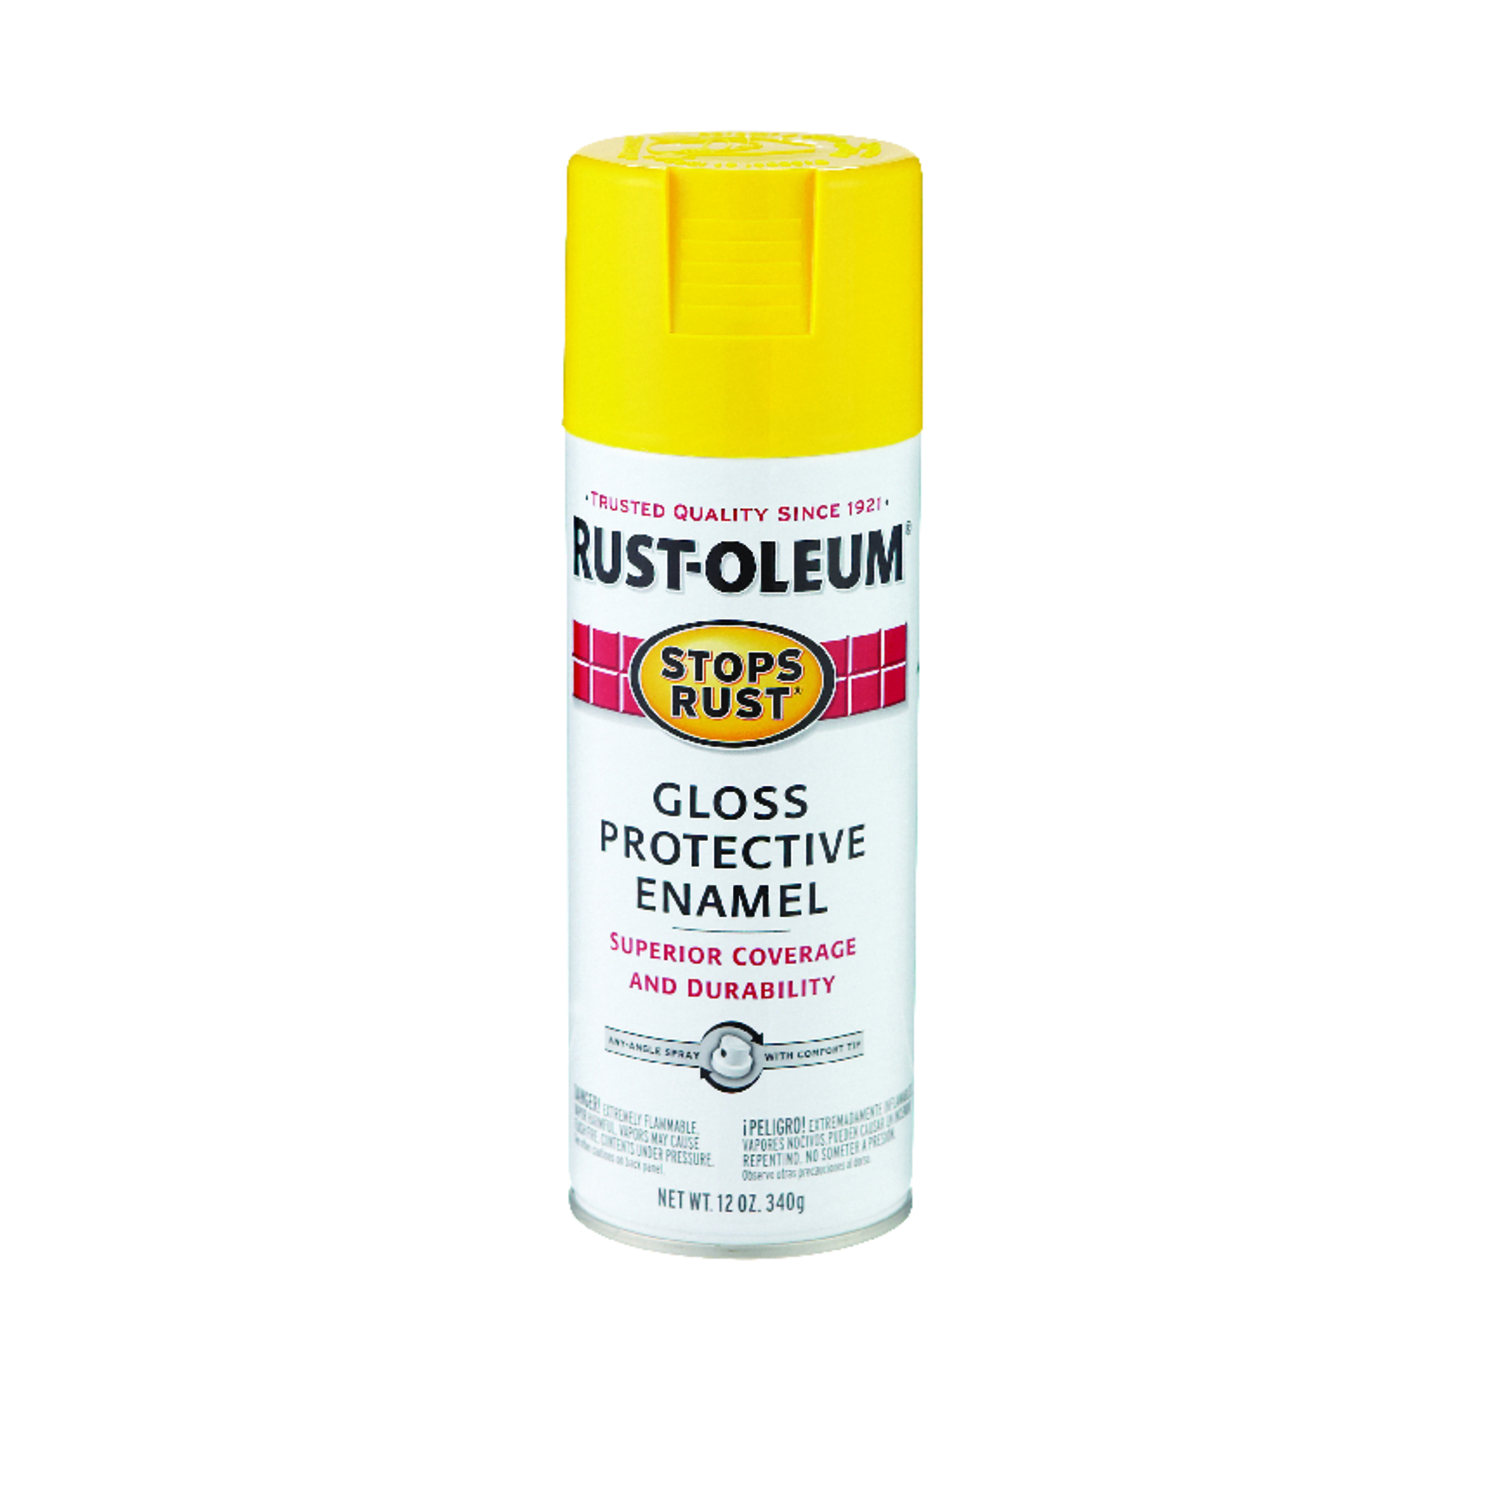 Rust-Oleum  Stops Rust  Gloss  Spray Paint  12 oz. Sunburst Yellow